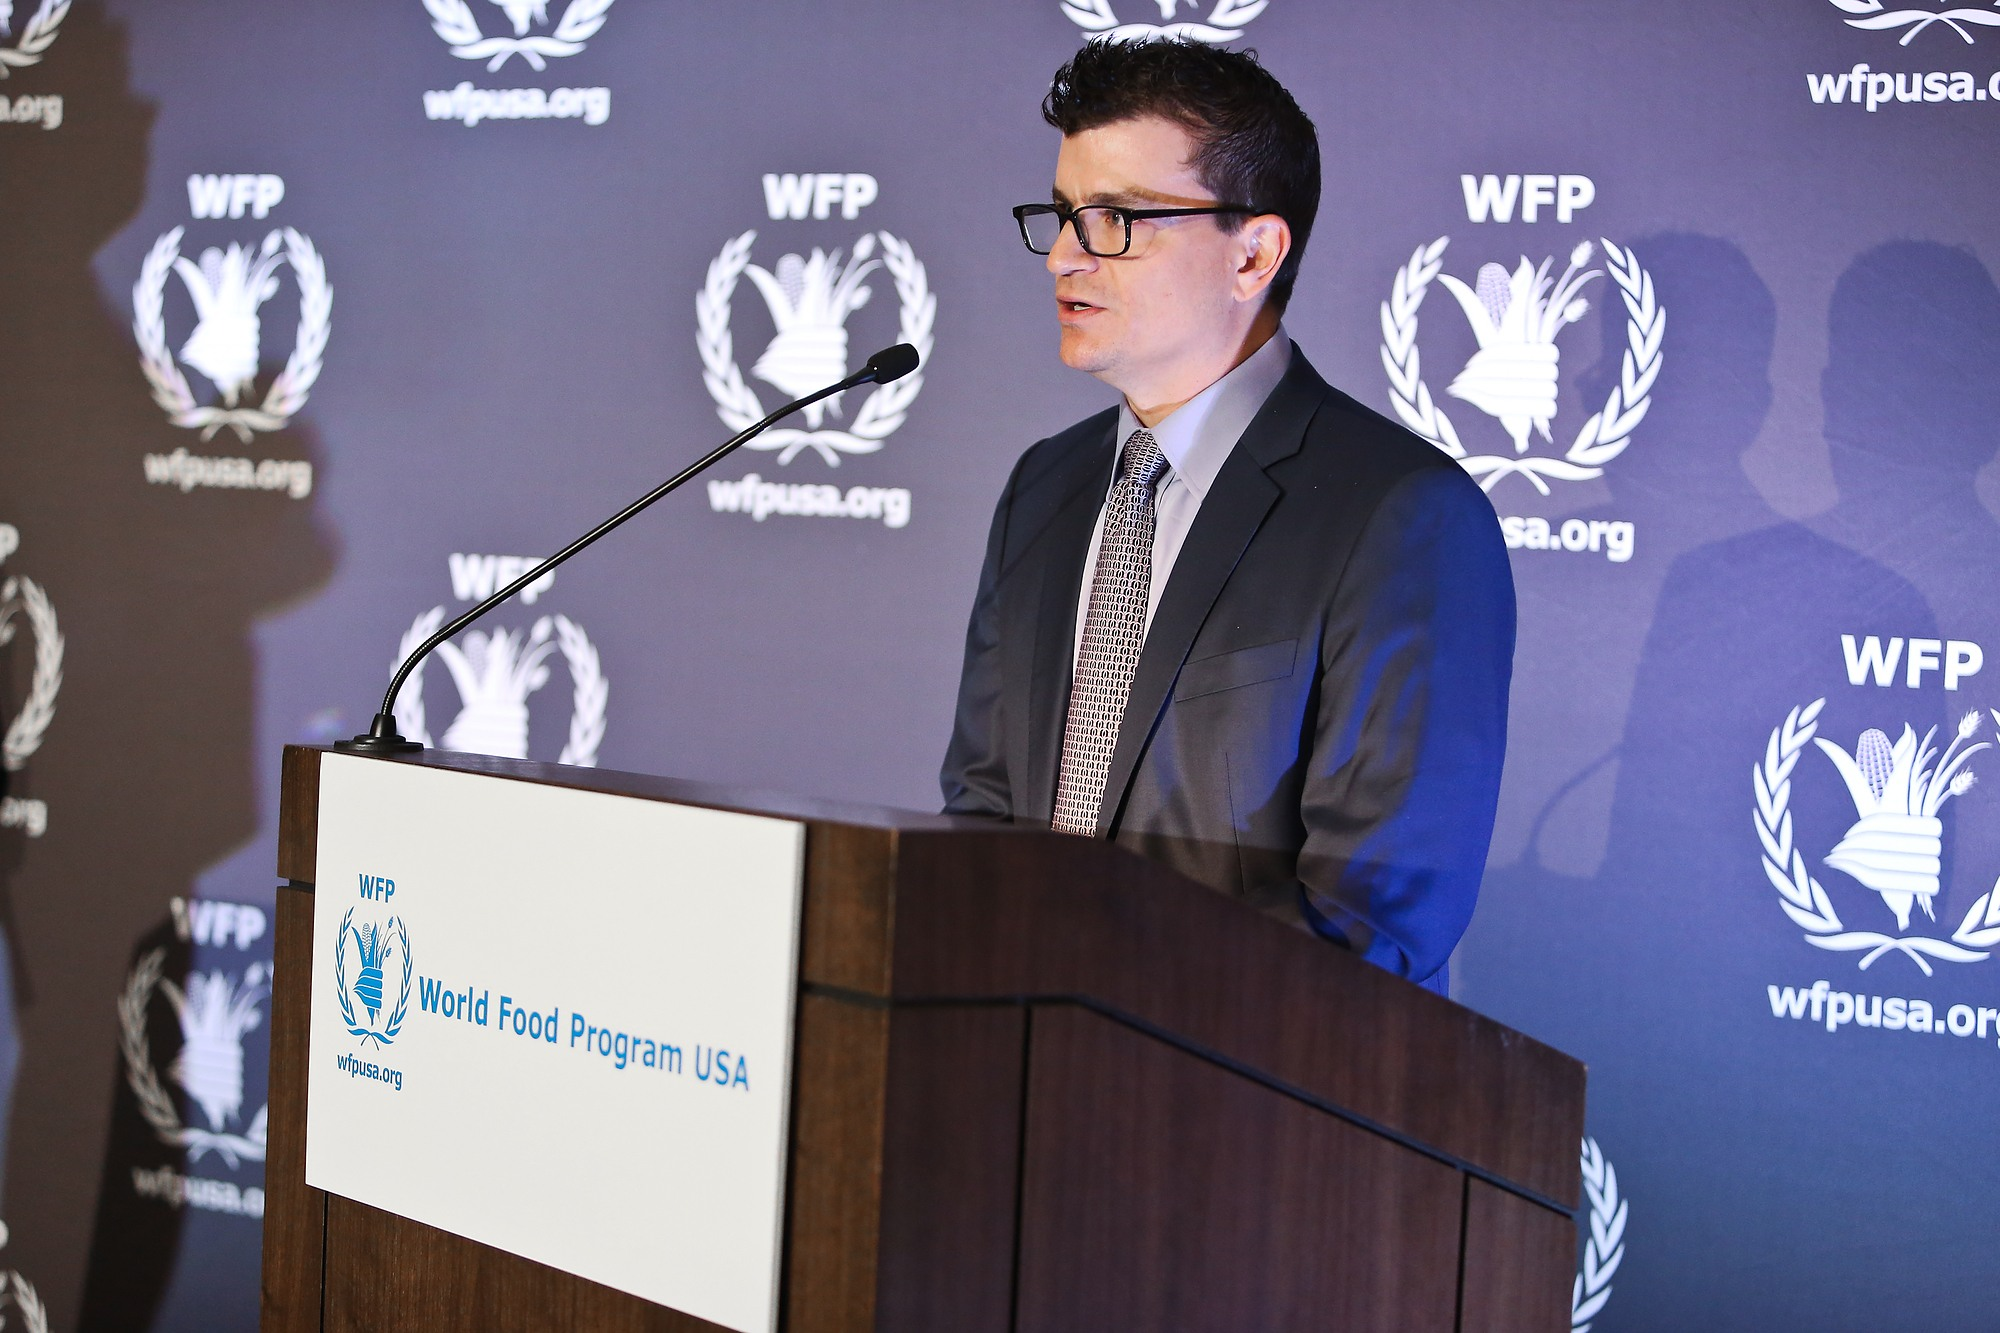 Alex Berger speaks about his father's legacy at WFP USA's Global Humanitarian Award event.